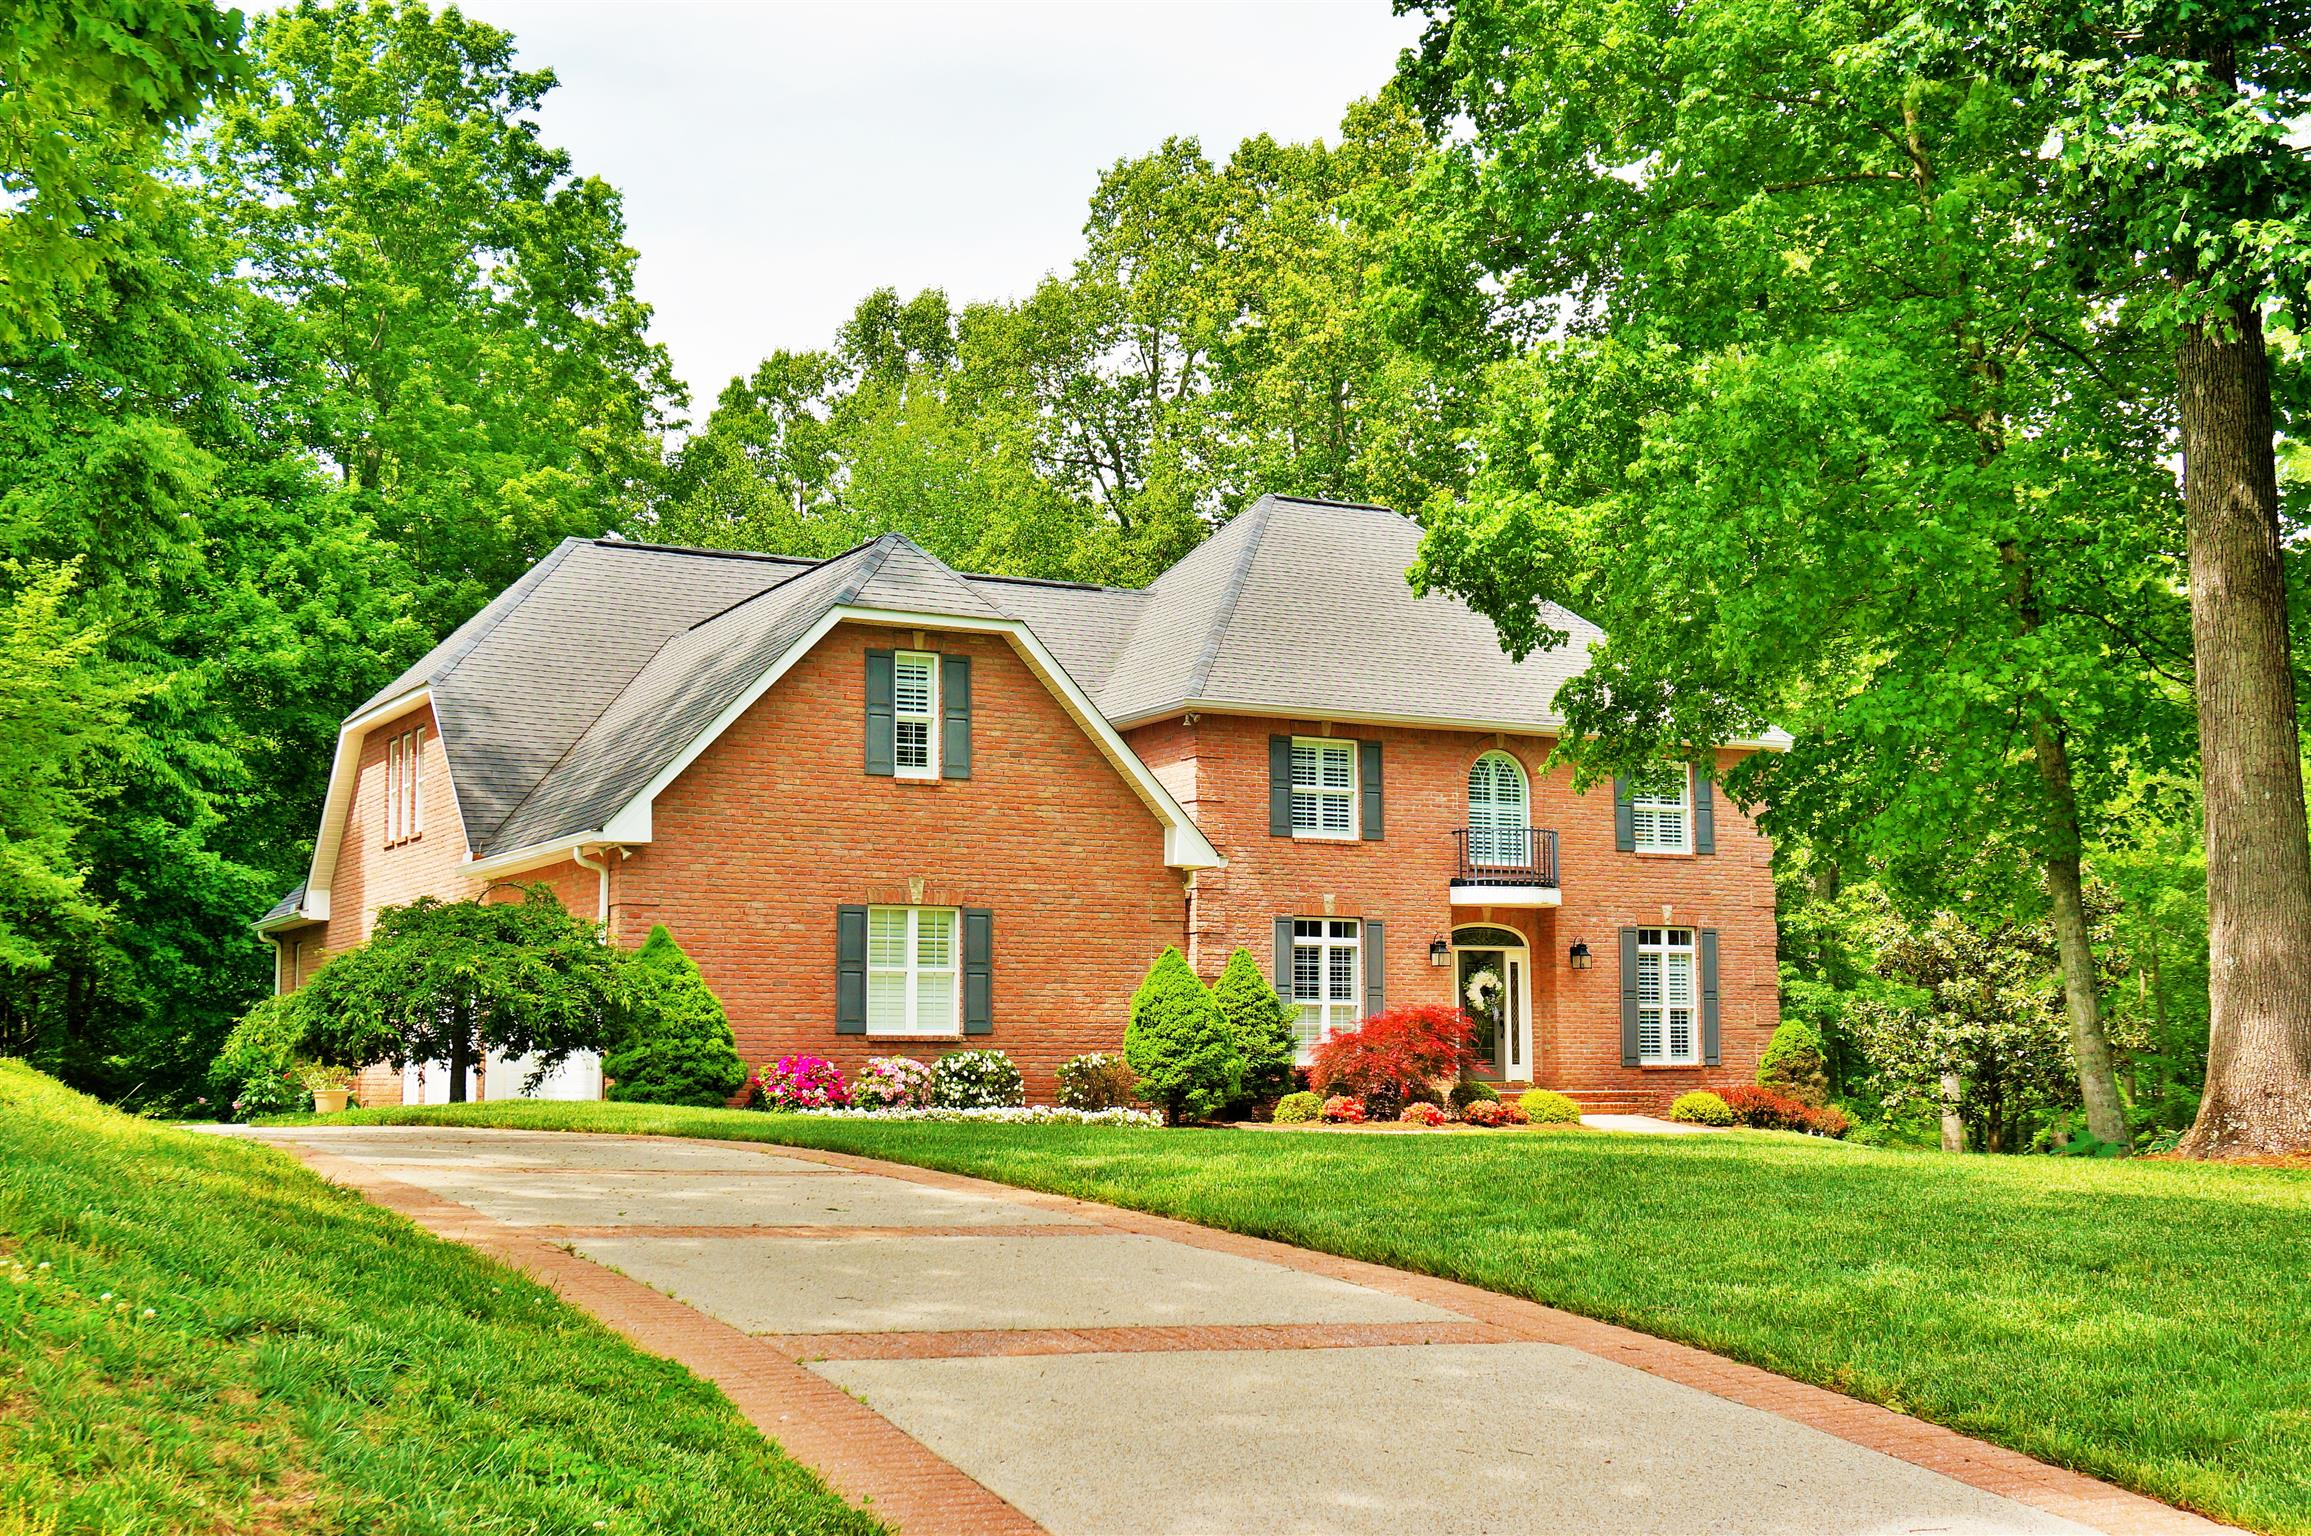 1046 Ridglea Dr, Burns, TN 37029 - Burns, TN real estate listing